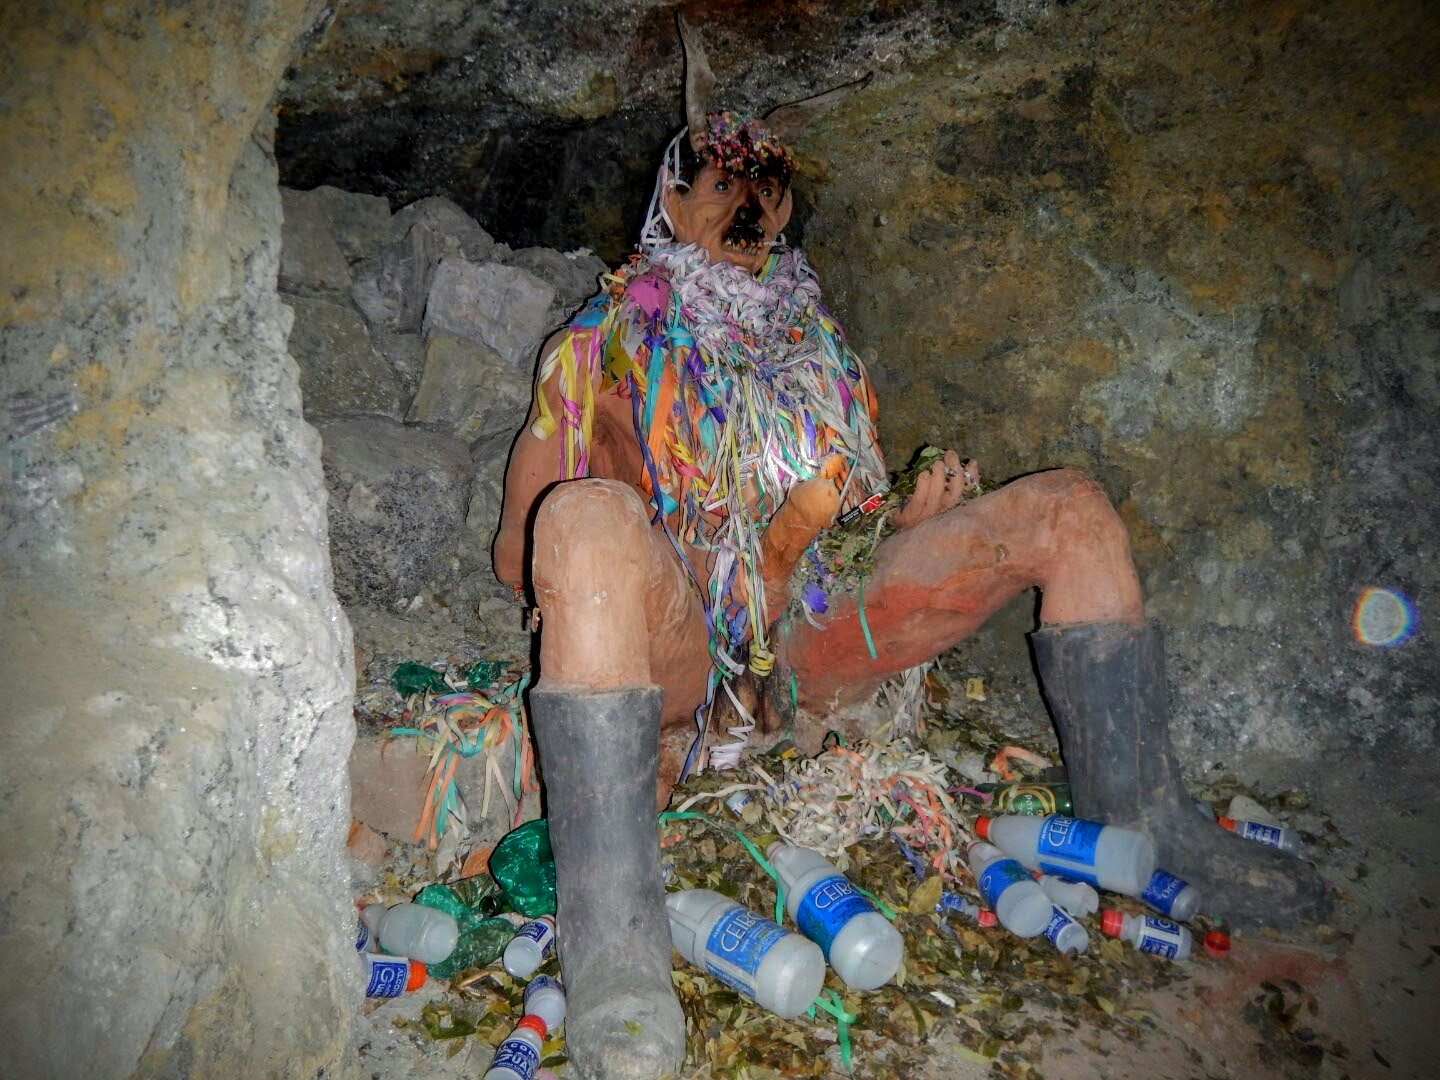 Statue of Dio de Pachamama in the Potosí mines